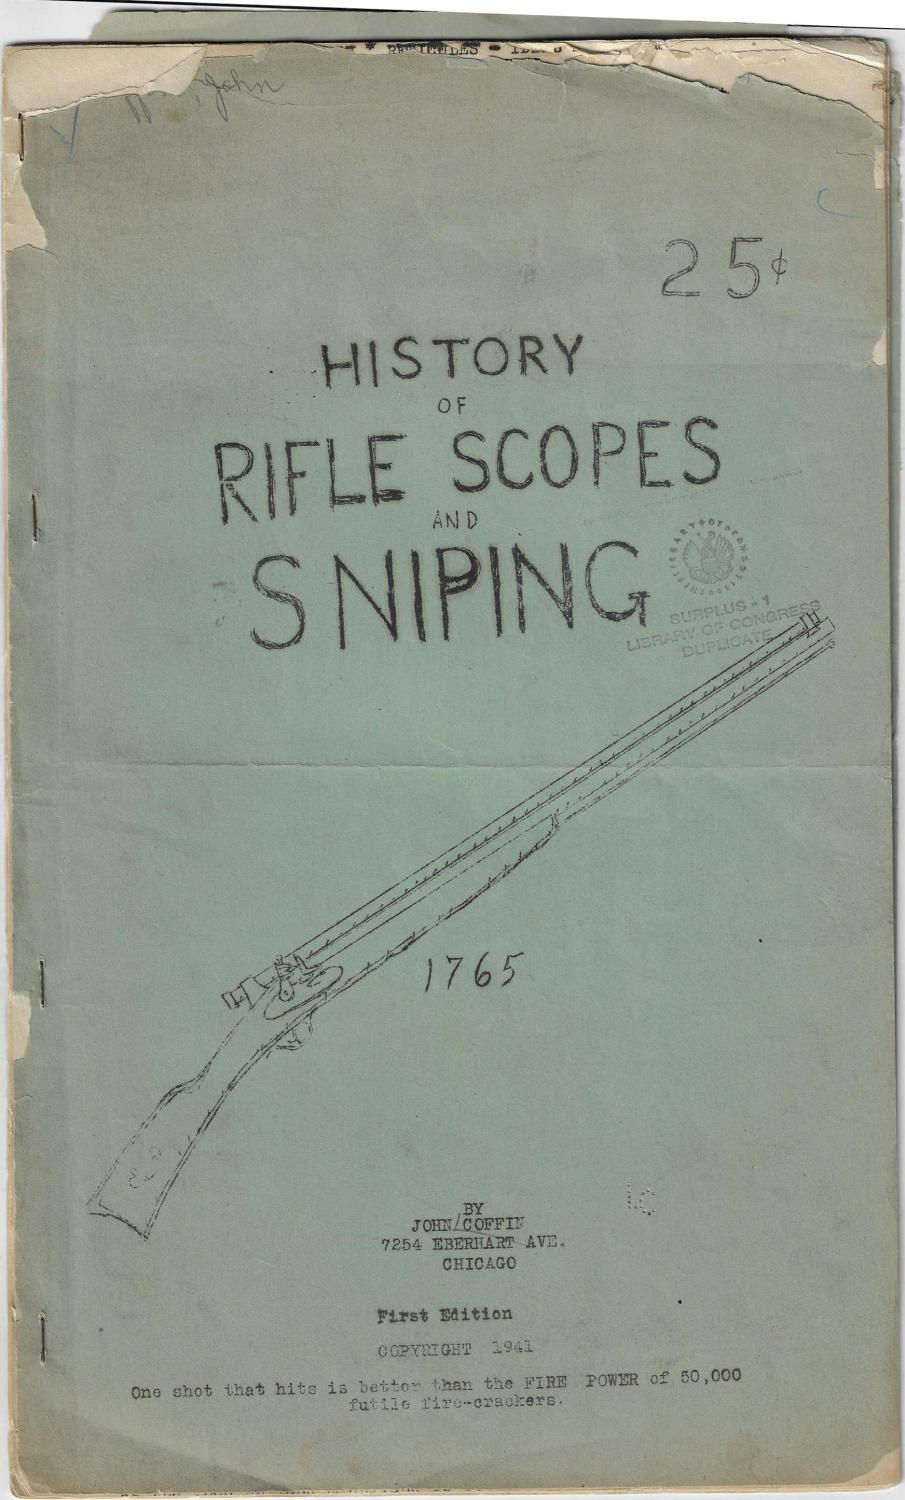 History of Rifle Scopes and Sniping John Coffin Good Softcover Tall (14x8.5 ) mimeographic homemade production (staple bound) 13 very full, densely typed leaves (with a few text illustrations) that runs approximat